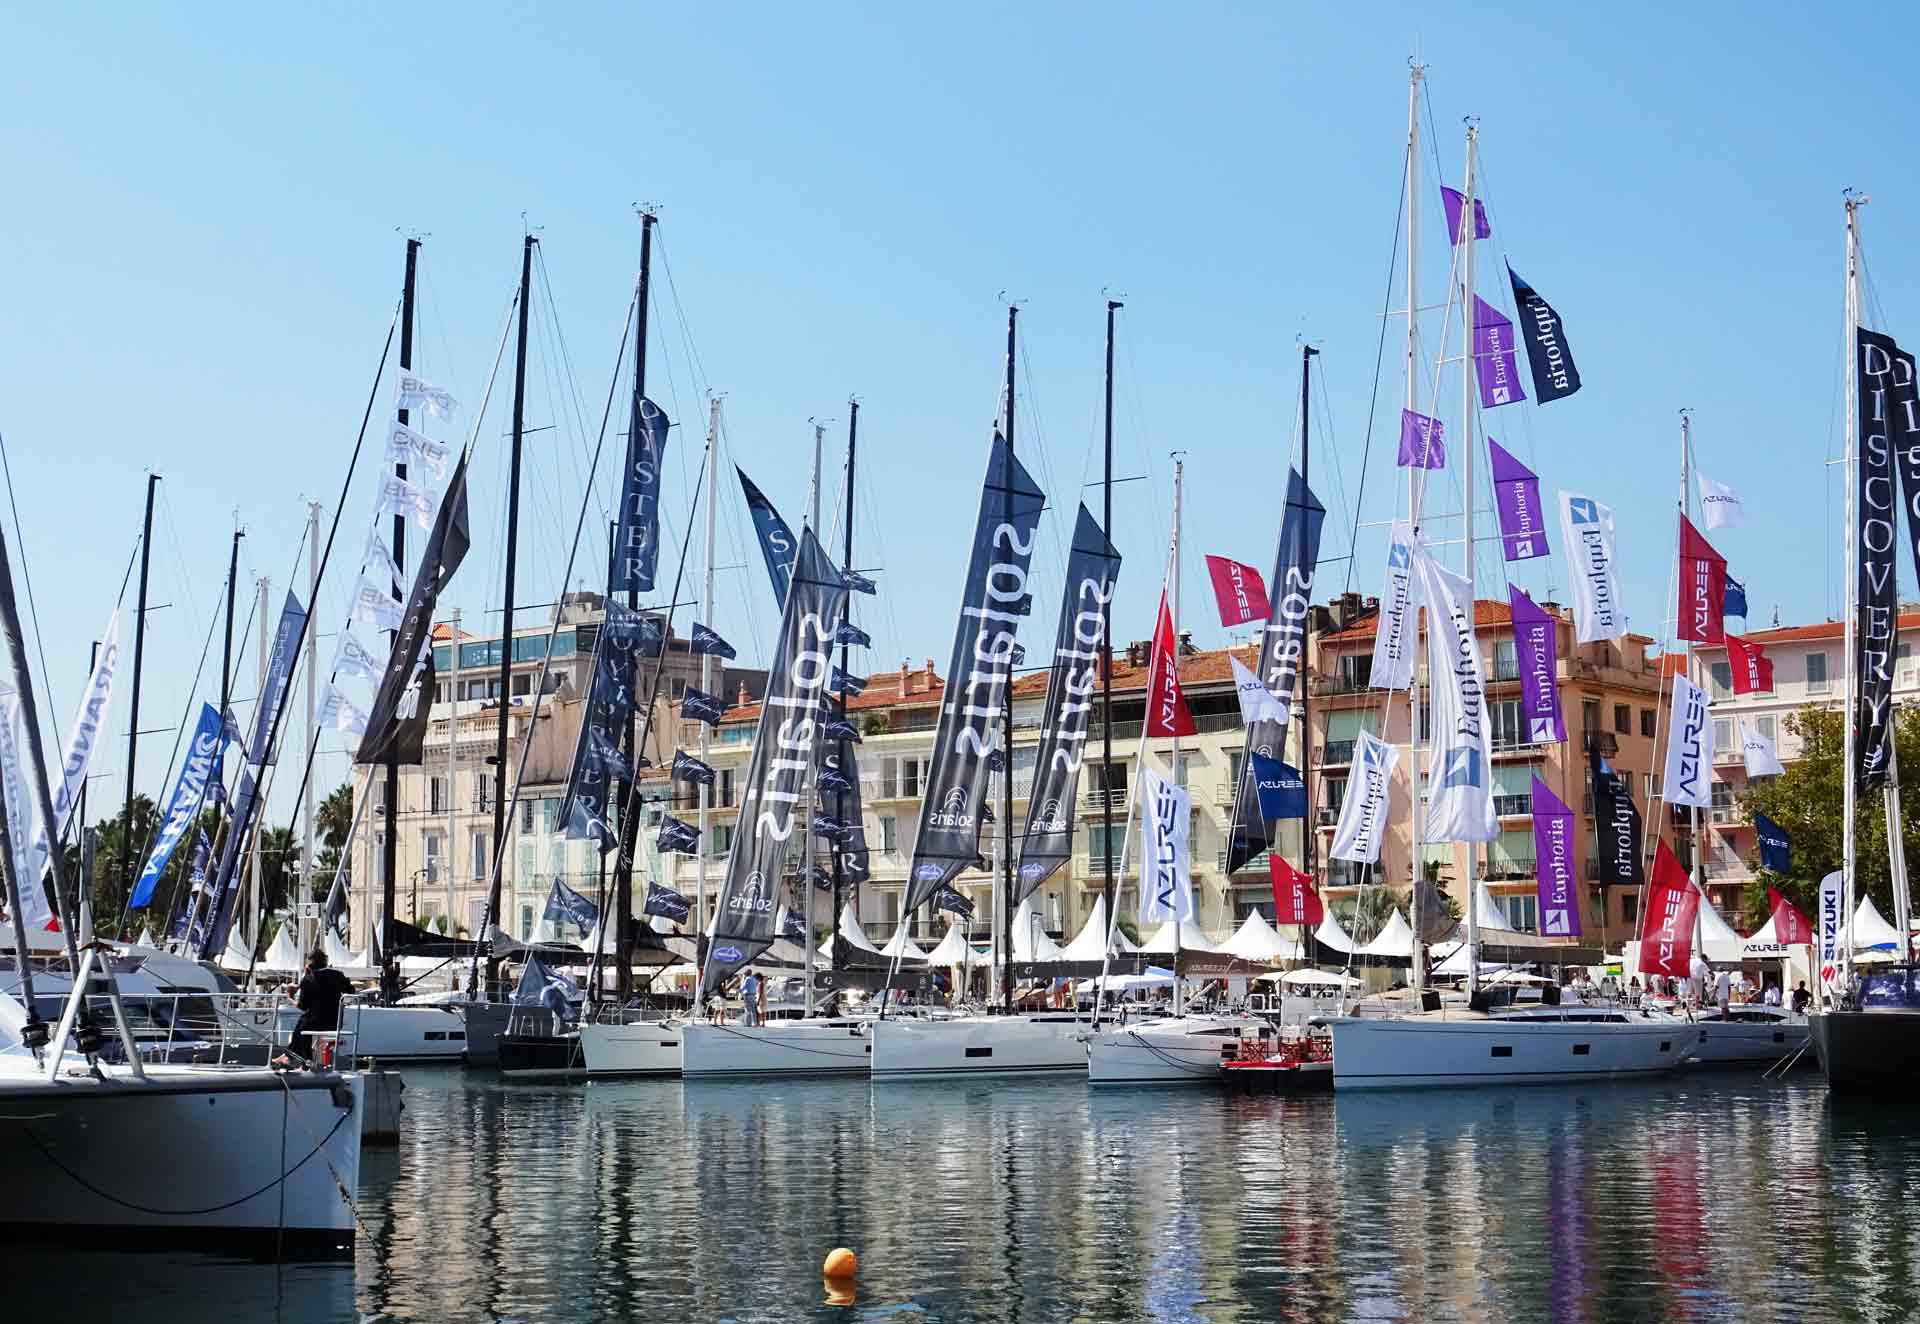 This part of the huge marina is reserved for sailing yachts